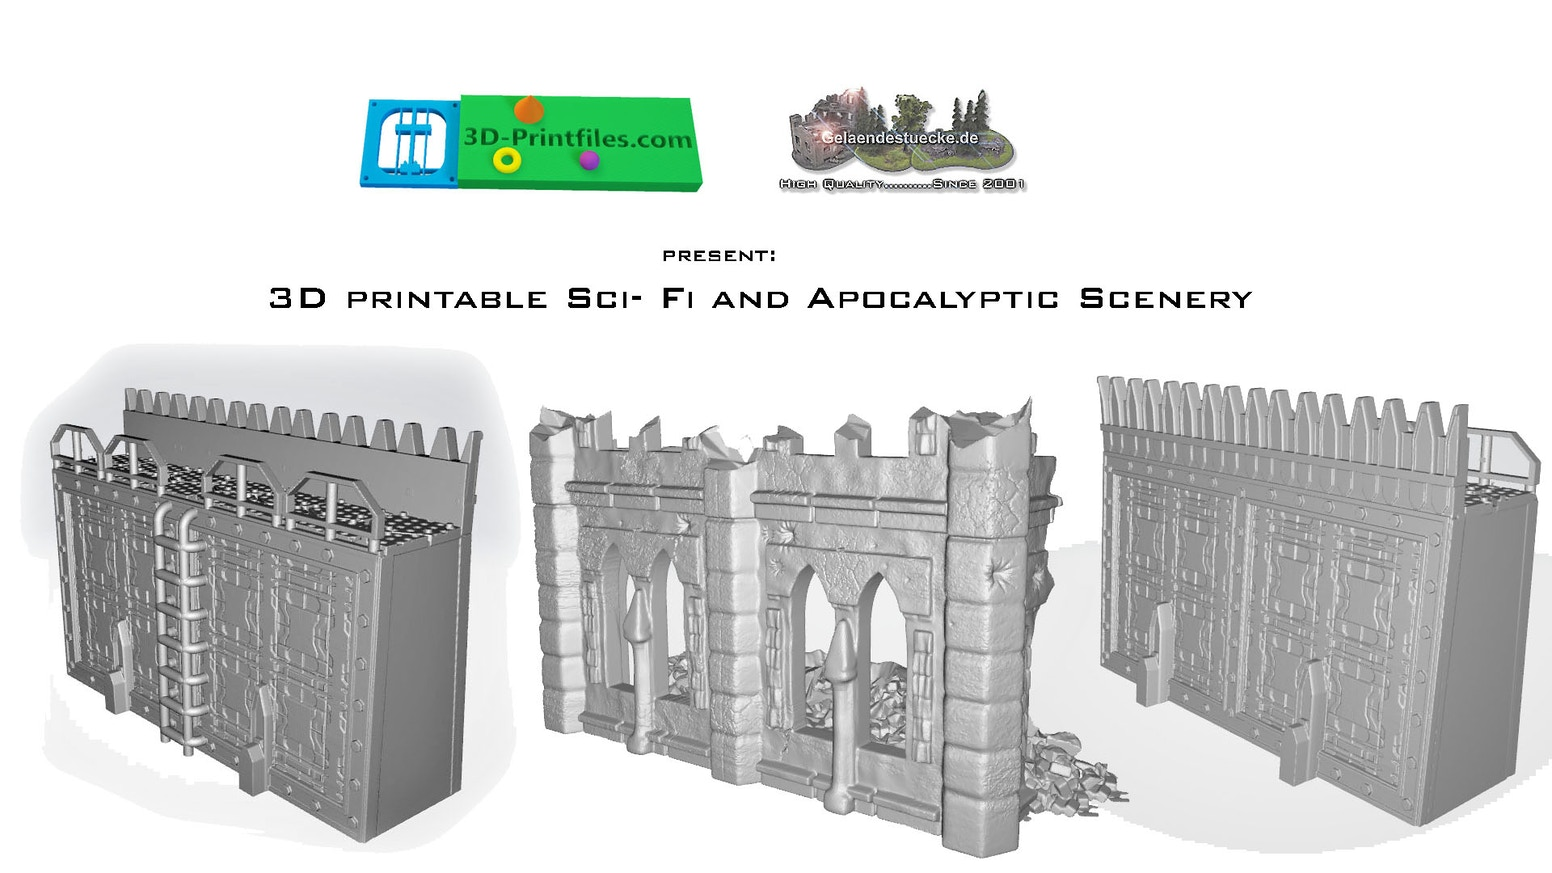 STL Files: 3D printable Sci- Fi and Apocalyptic Scenery for your own 3D home Printer.